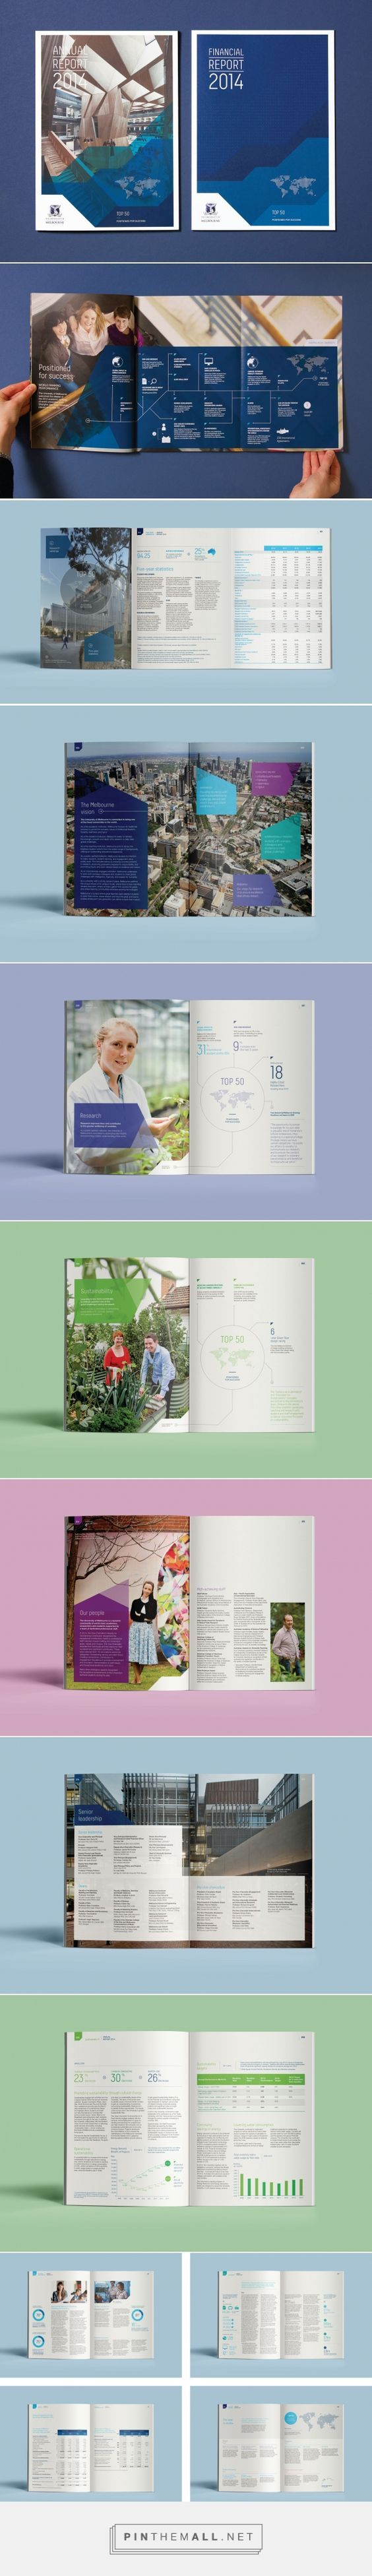 Company annual report sample 30 red year report charts powerpoint university of melbourne annual report studio binocular created via httpspinthemall toneelgroepblik Choice Image